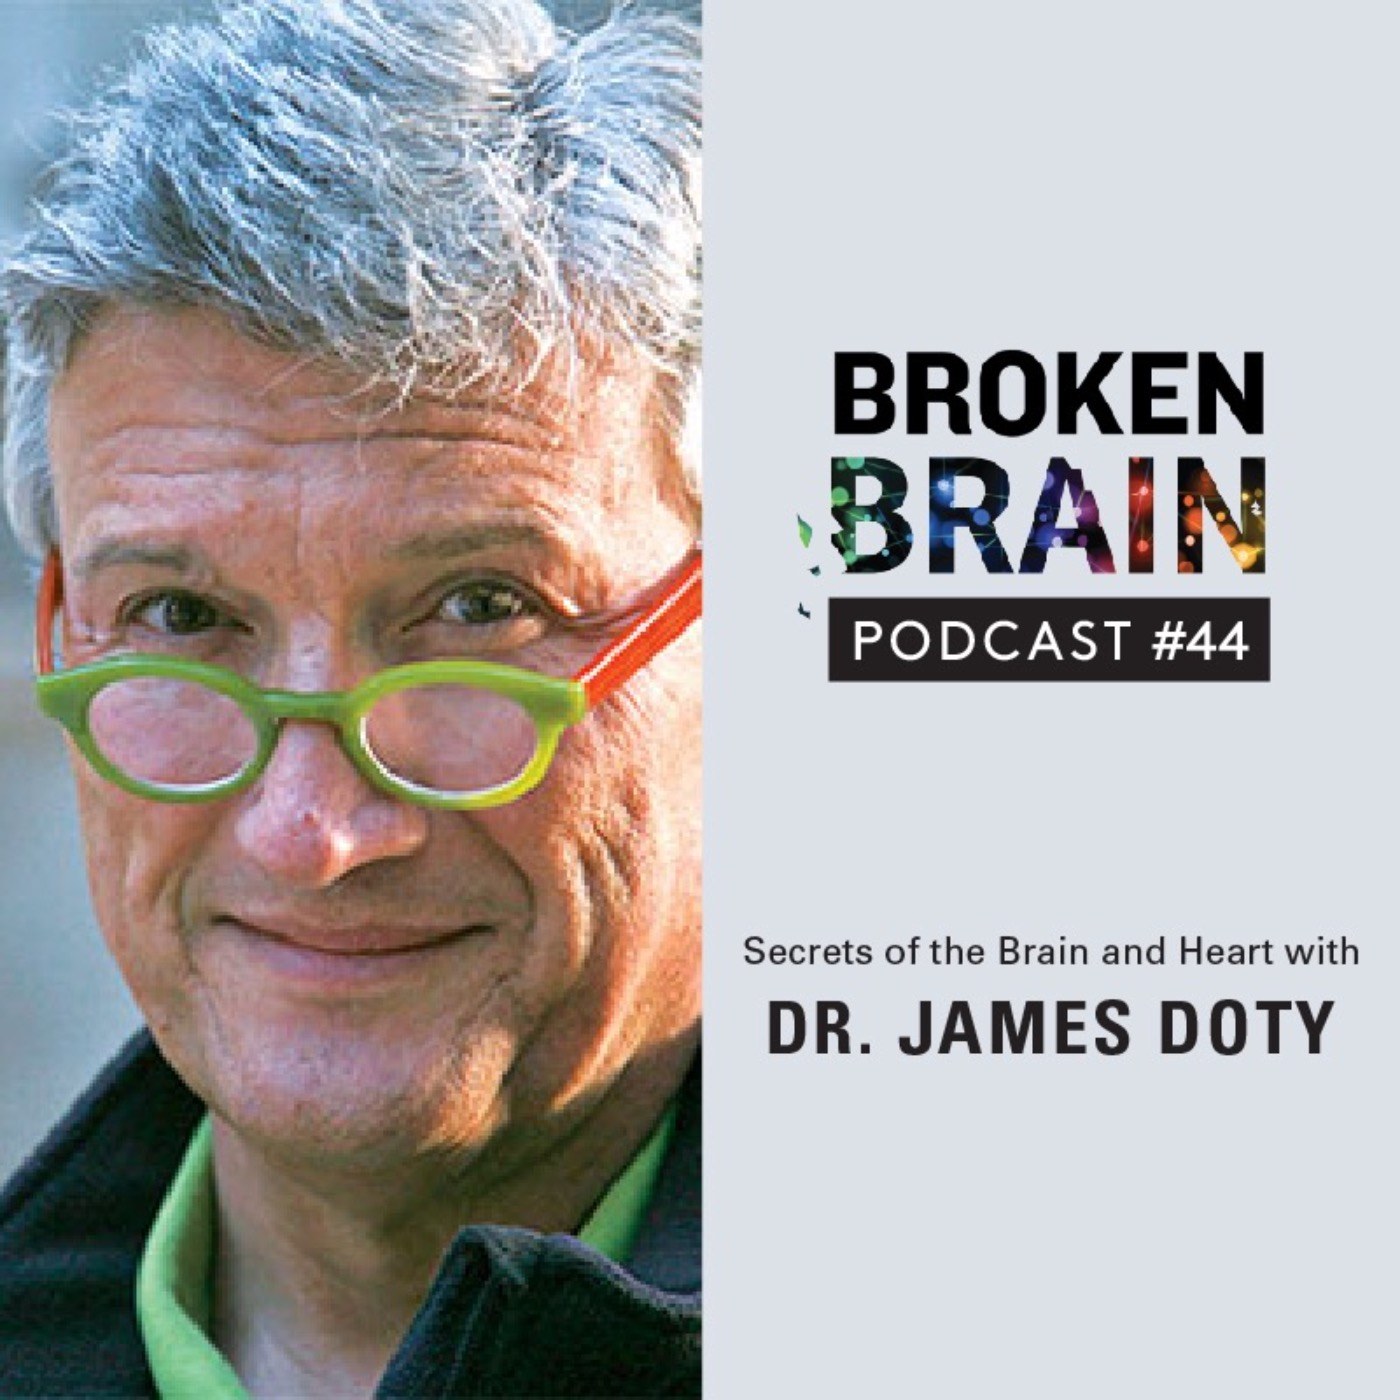 #44: Secrets of the Brain and Heart with Dr. James Doty